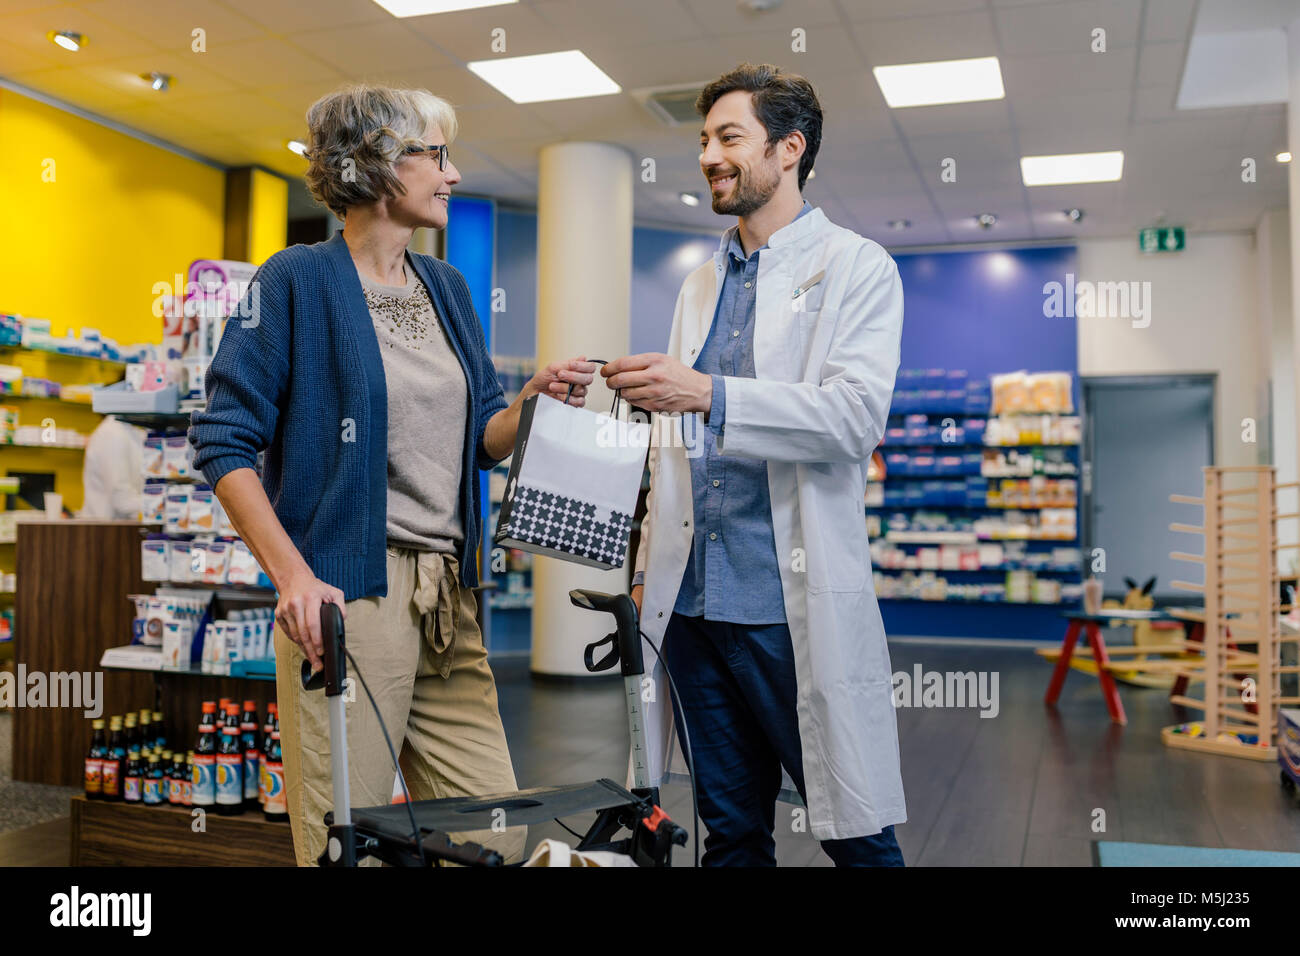 Pharmacist giving bag of medicine to customer with wheeled walker in pharmacy - Stock Image